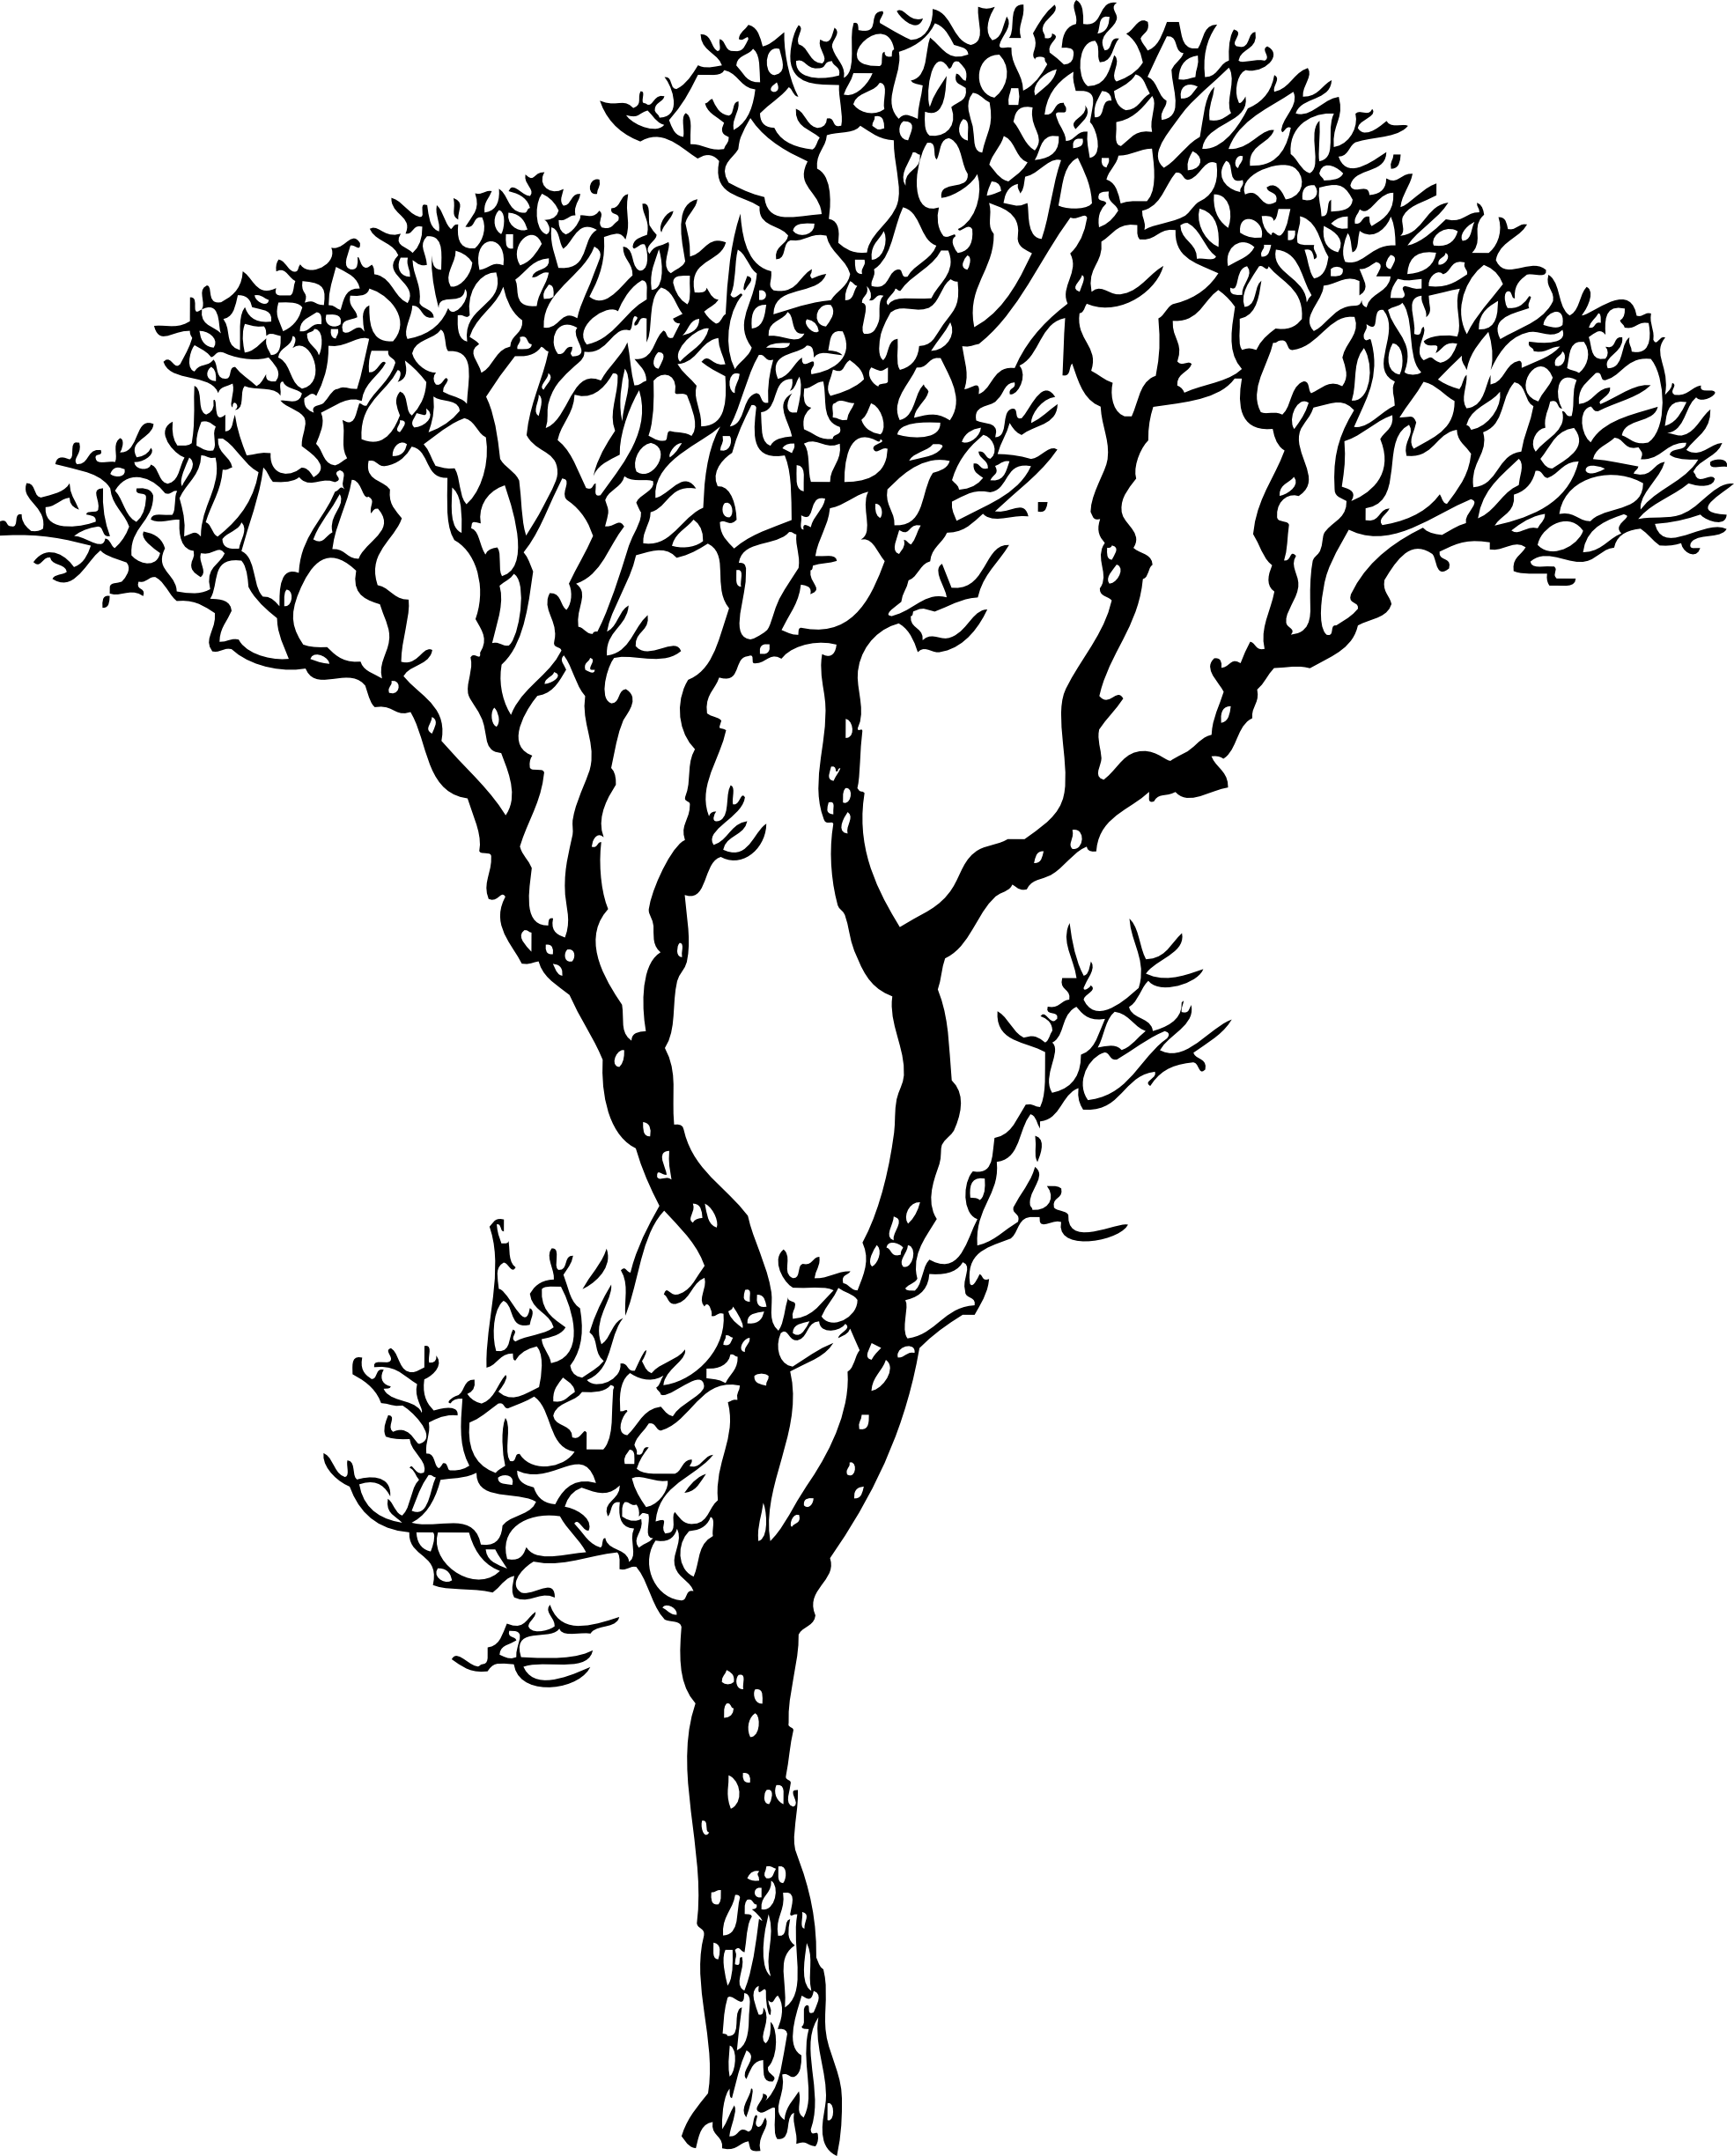 Bare tree line art. Skin clipart black and white